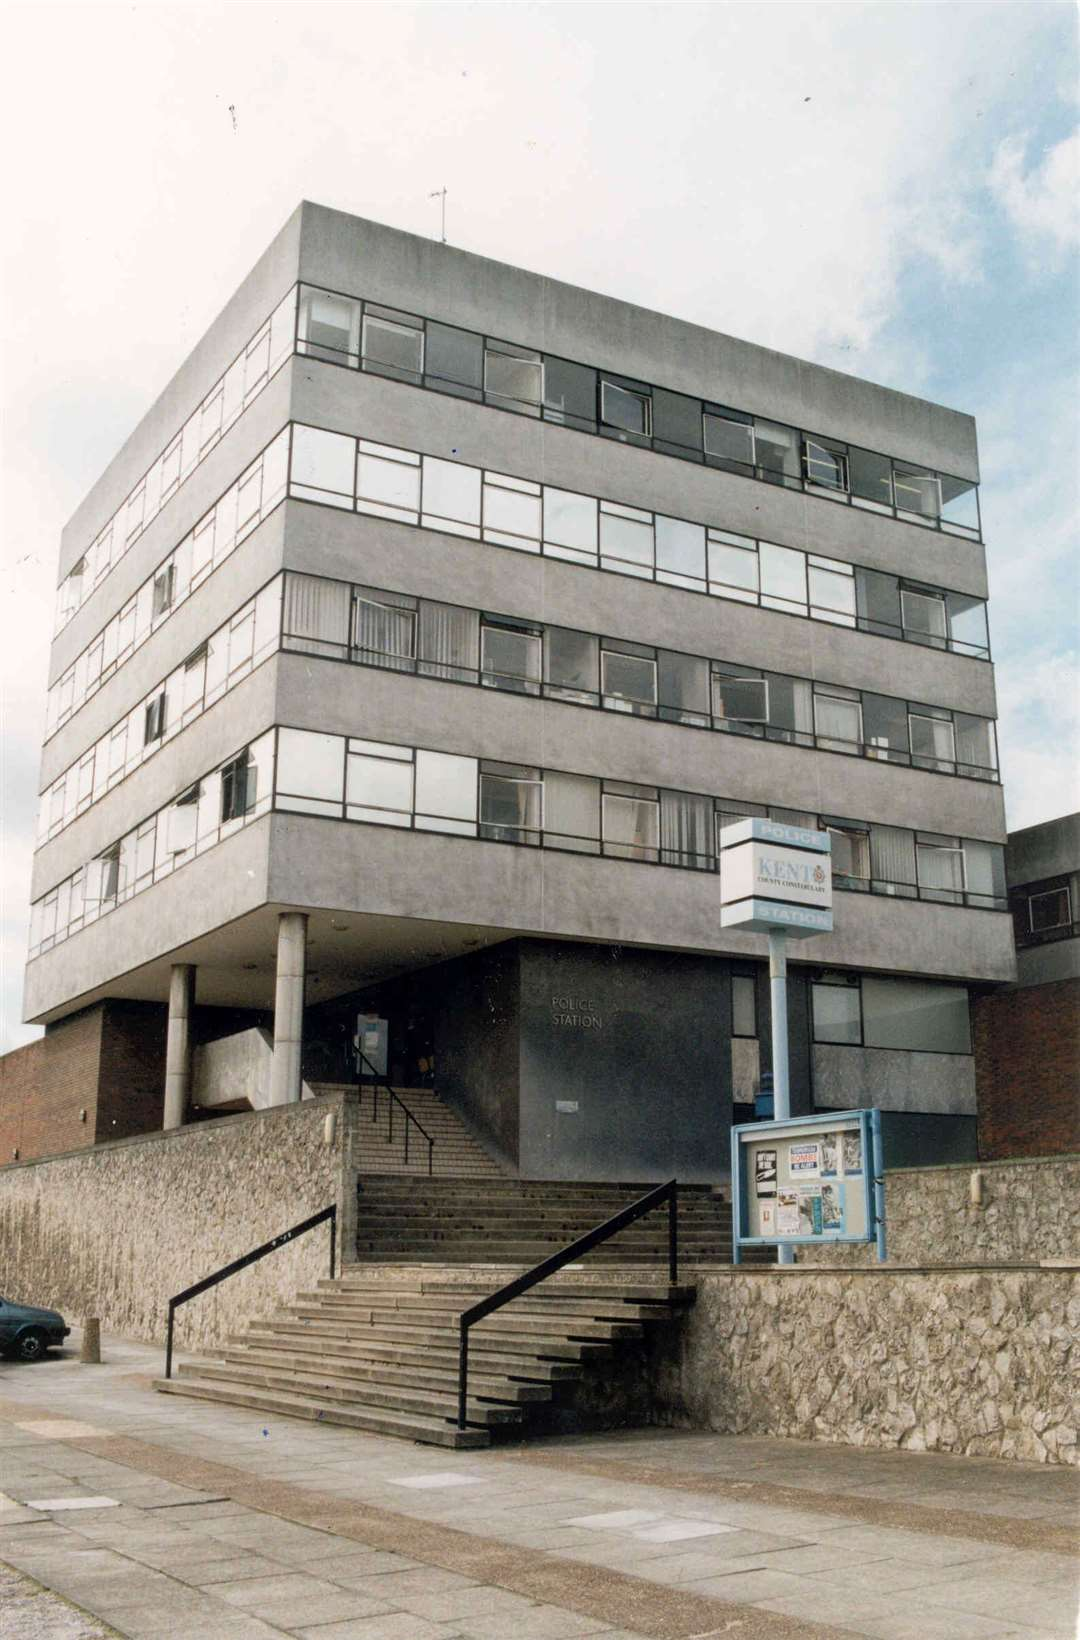 Rochester's police station in 1997